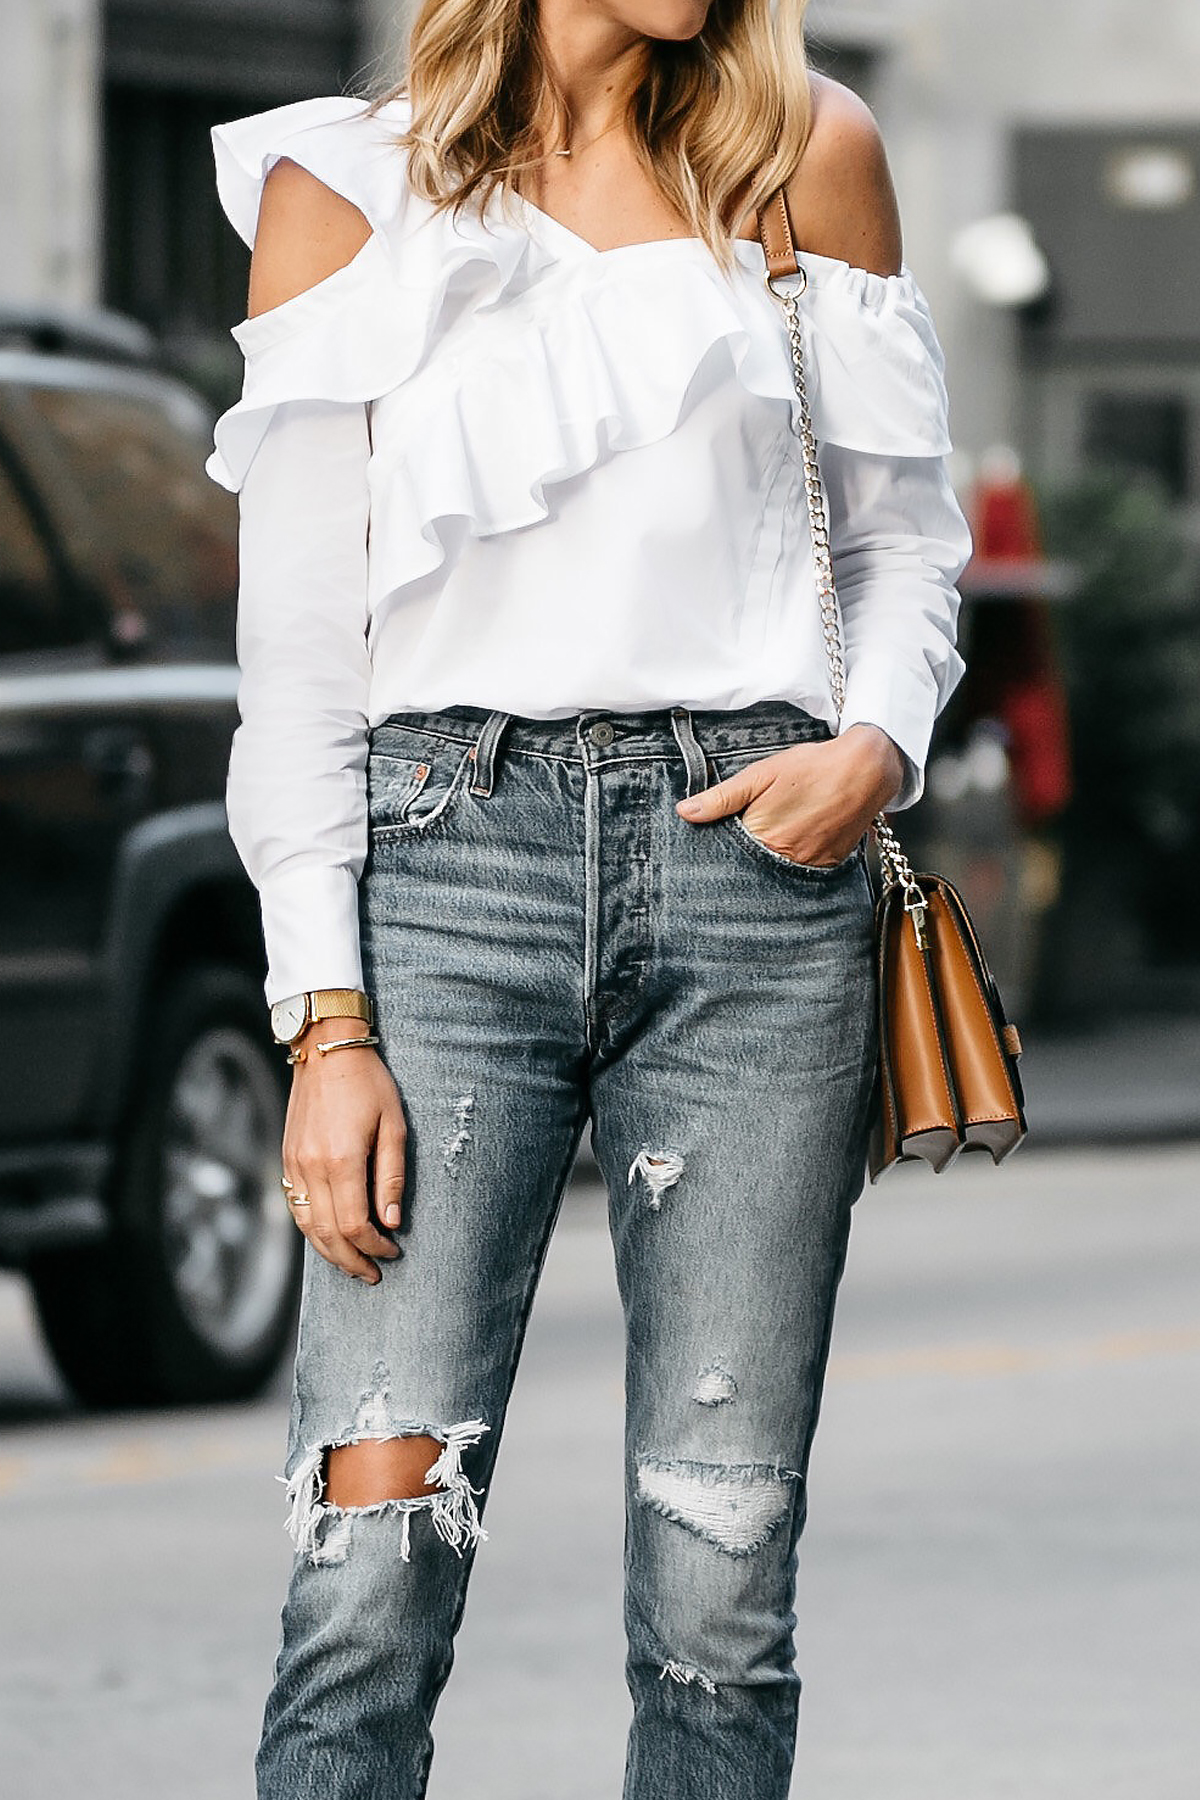 Shopbop White Asymmetrical Ruffle Top Levis Denim Ripped Skinny Jeans Street Style Dallas Blogger Fashion Blogger